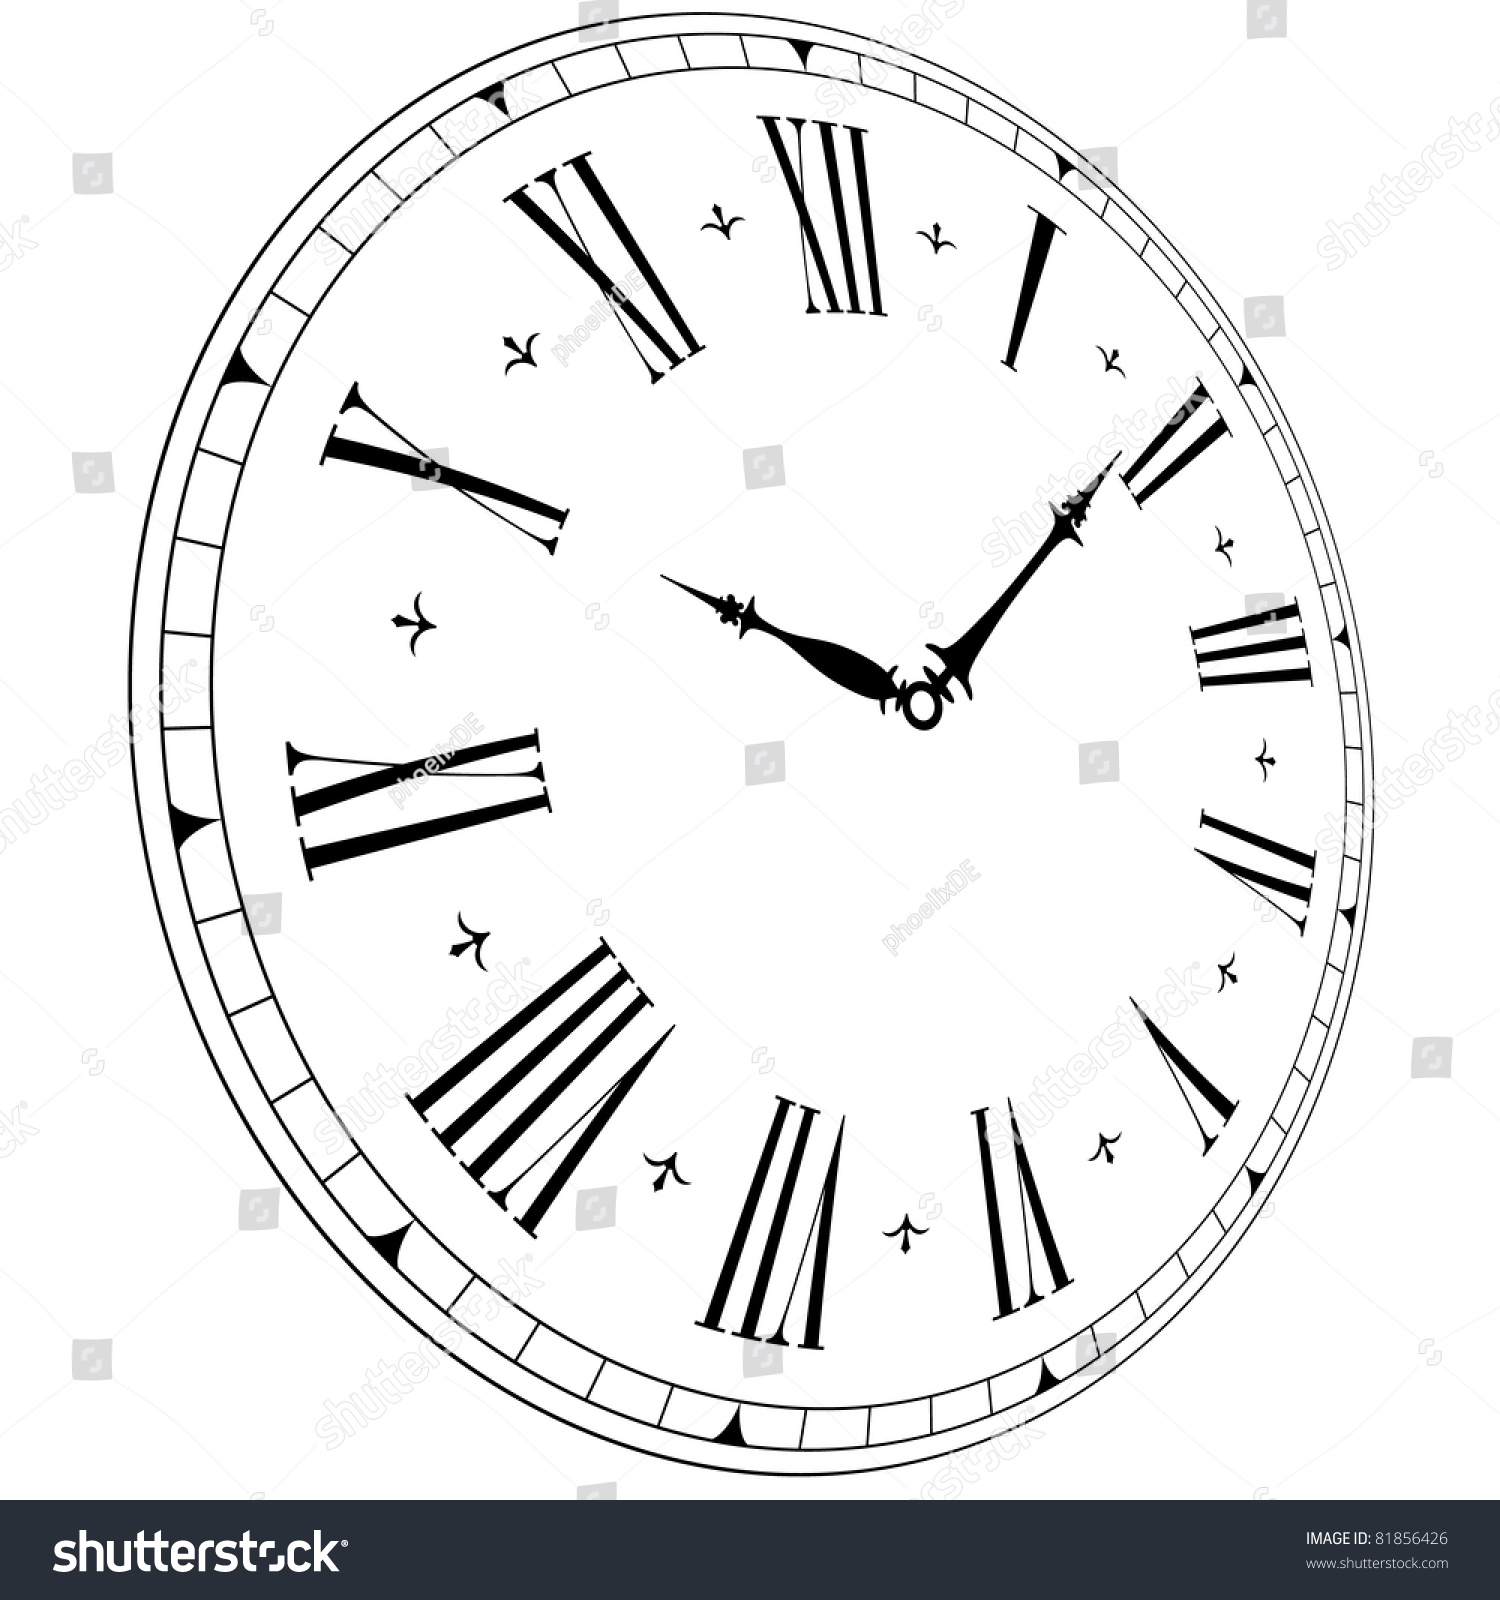 Illustration Of An Old Clock Face With Perspective Angle